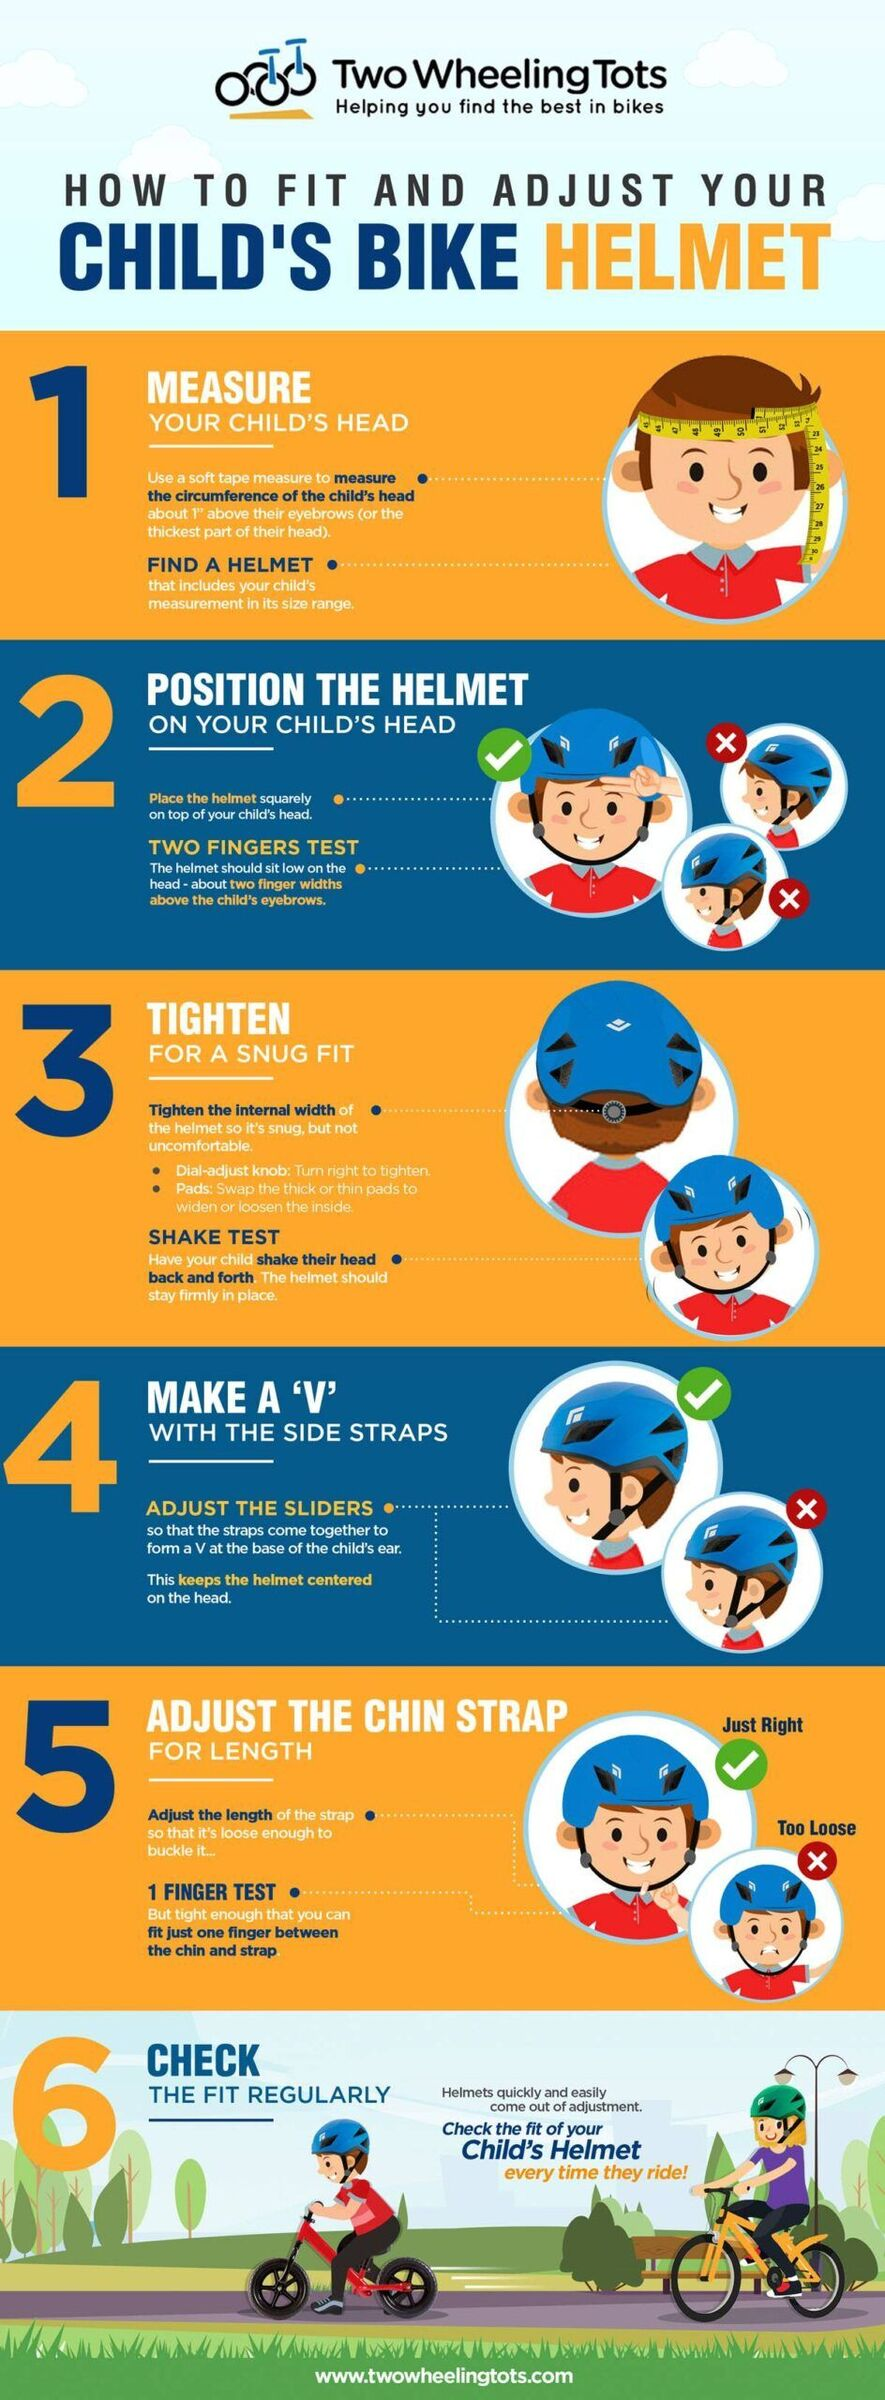 Infographic that shows 6 steps to fit and adjust your child's bike helmet. 1. Measure your child's head. 2. Position the helmet squarely on the head. 3. Tighten for a snug fit. 4. Make a V with the side straps. 5. Adjust the chin strap for length. 6. Check the fit regularly.